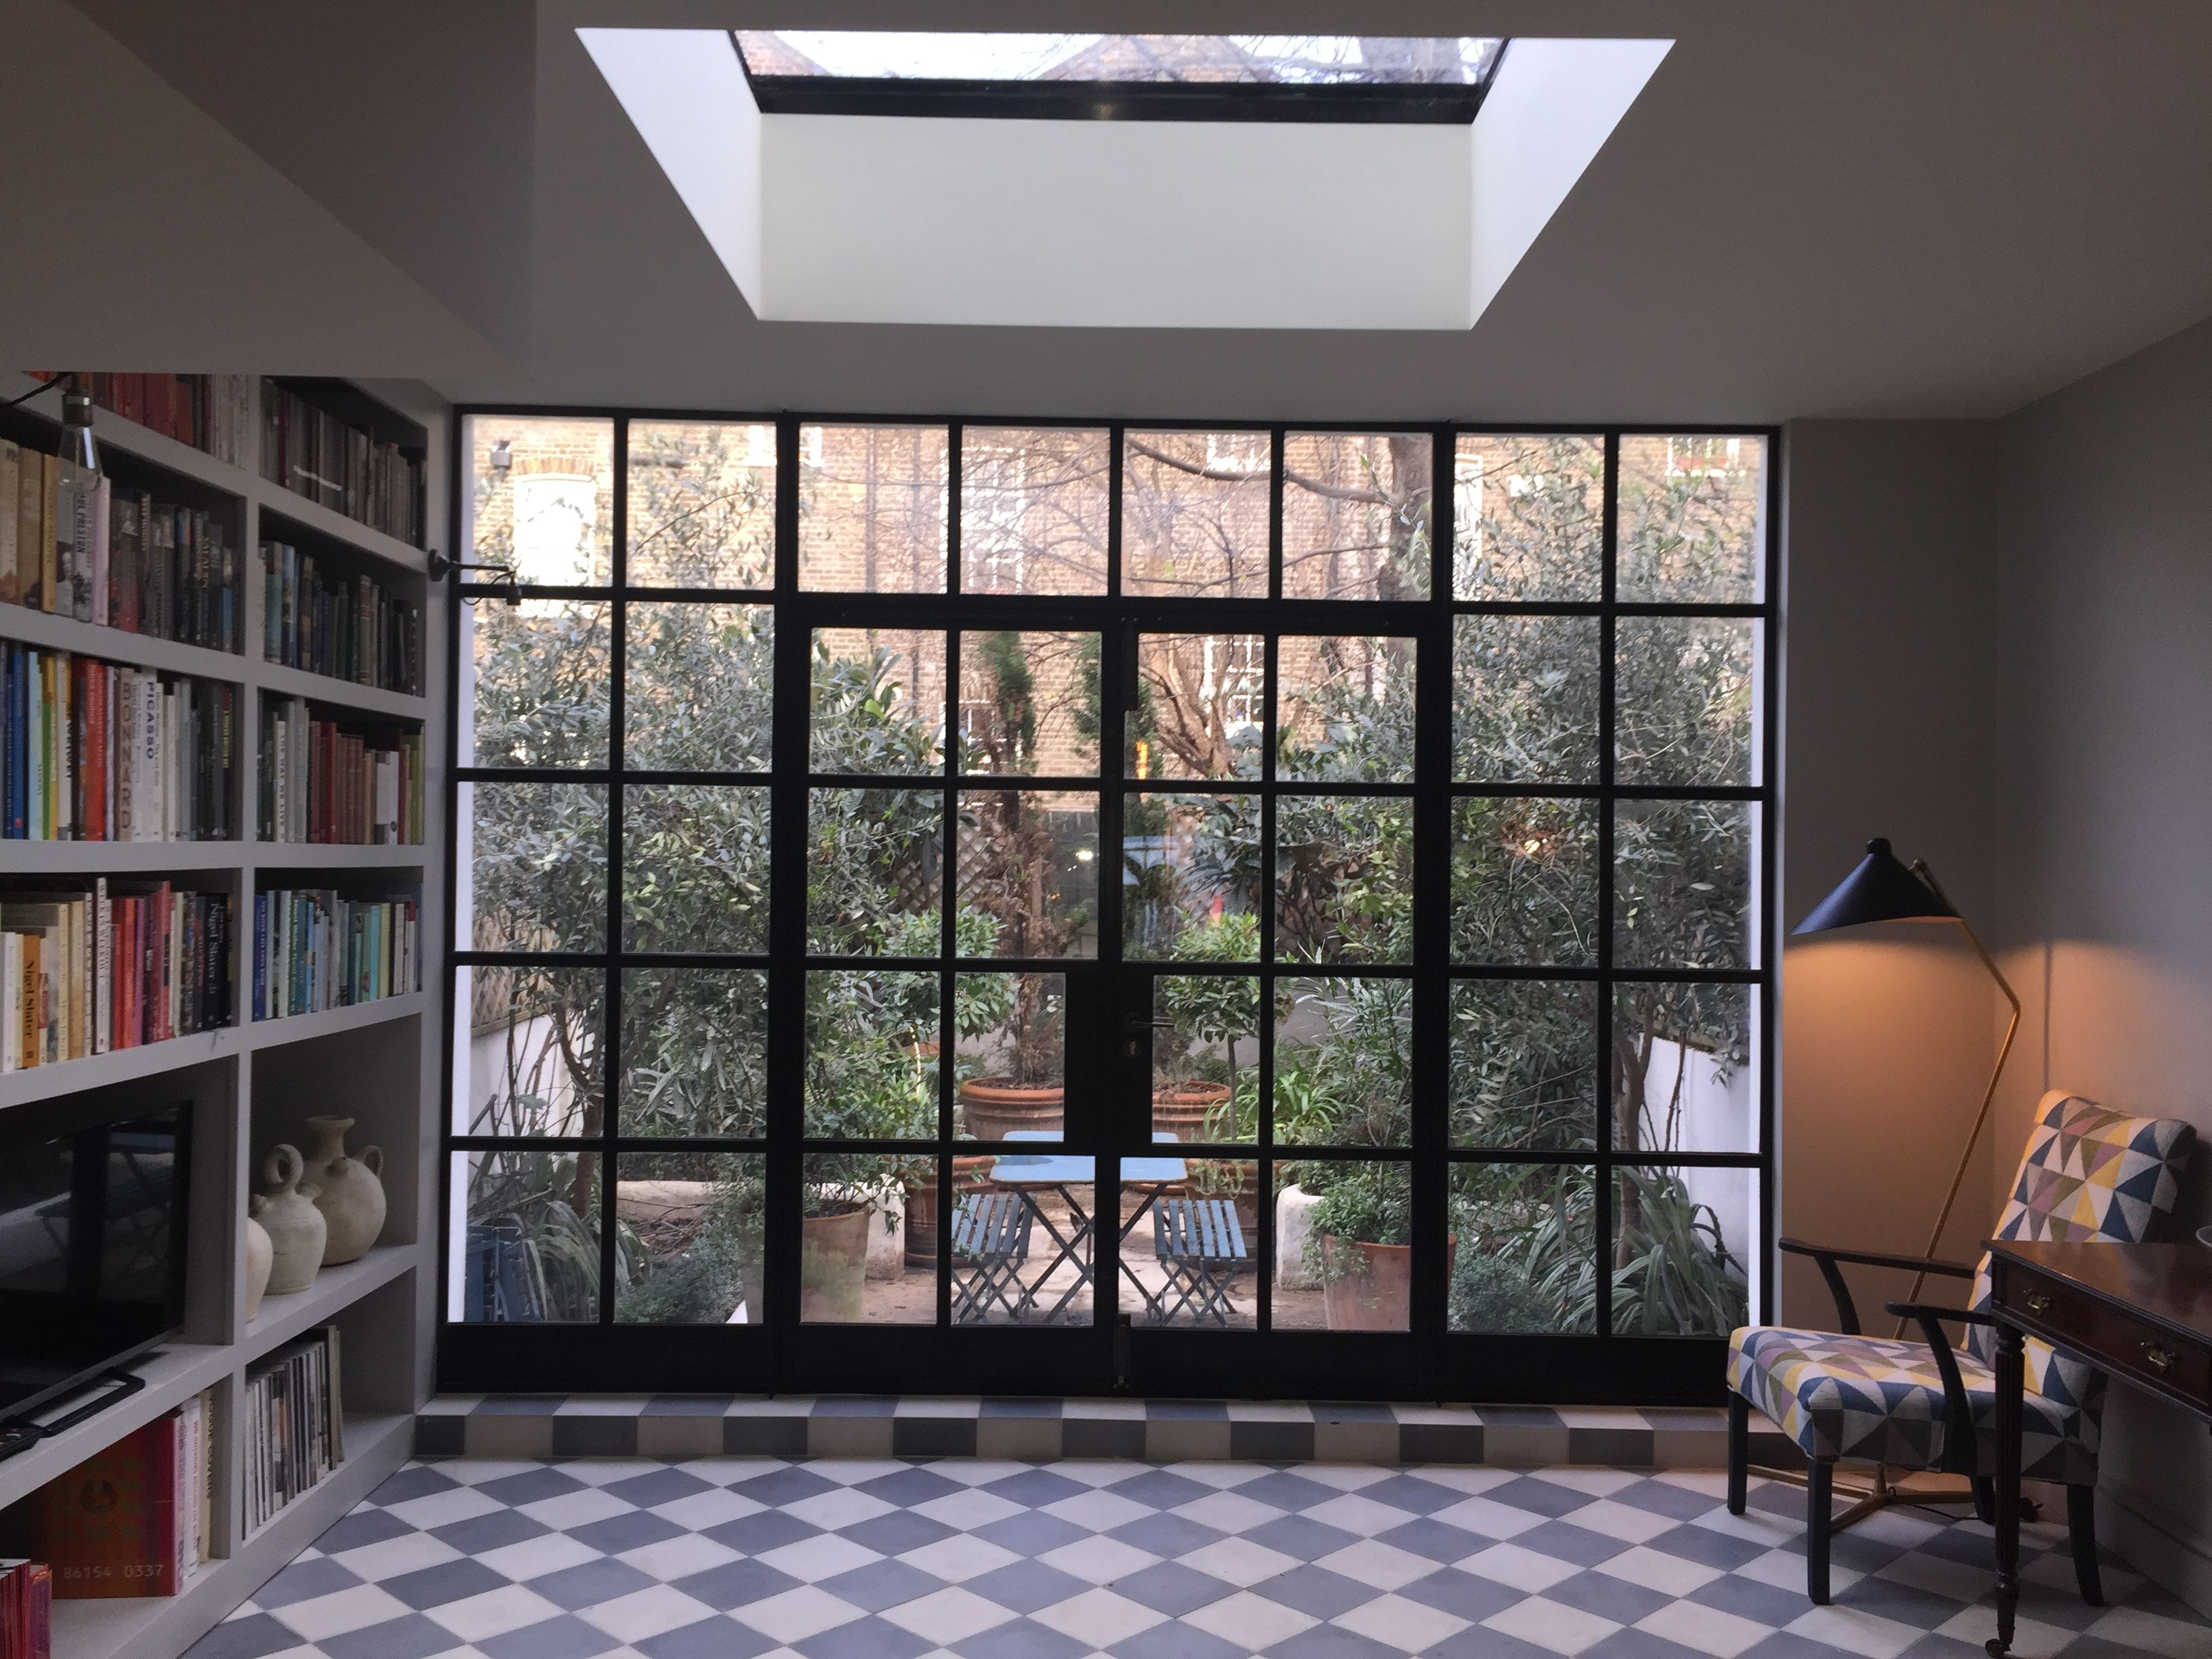 crittall doors crittall window installation. Black Bedroom Furniture Sets. Home Design Ideas